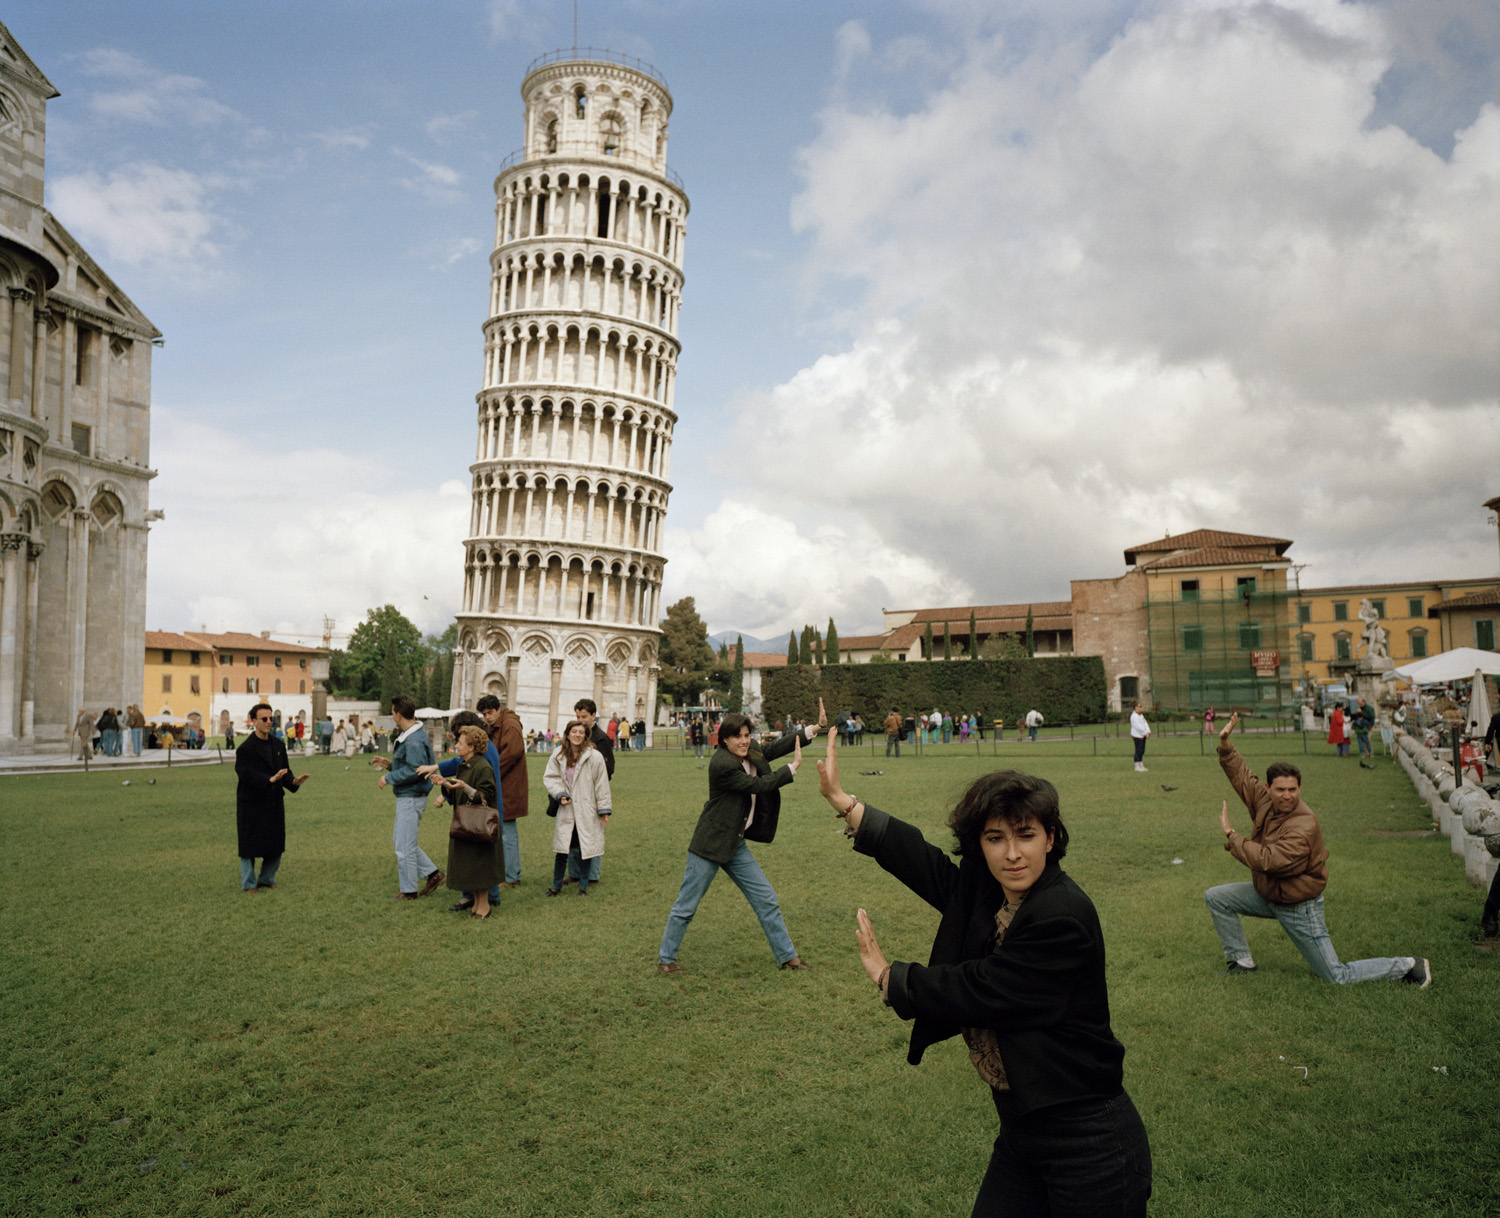 photograph-by-martin-parr